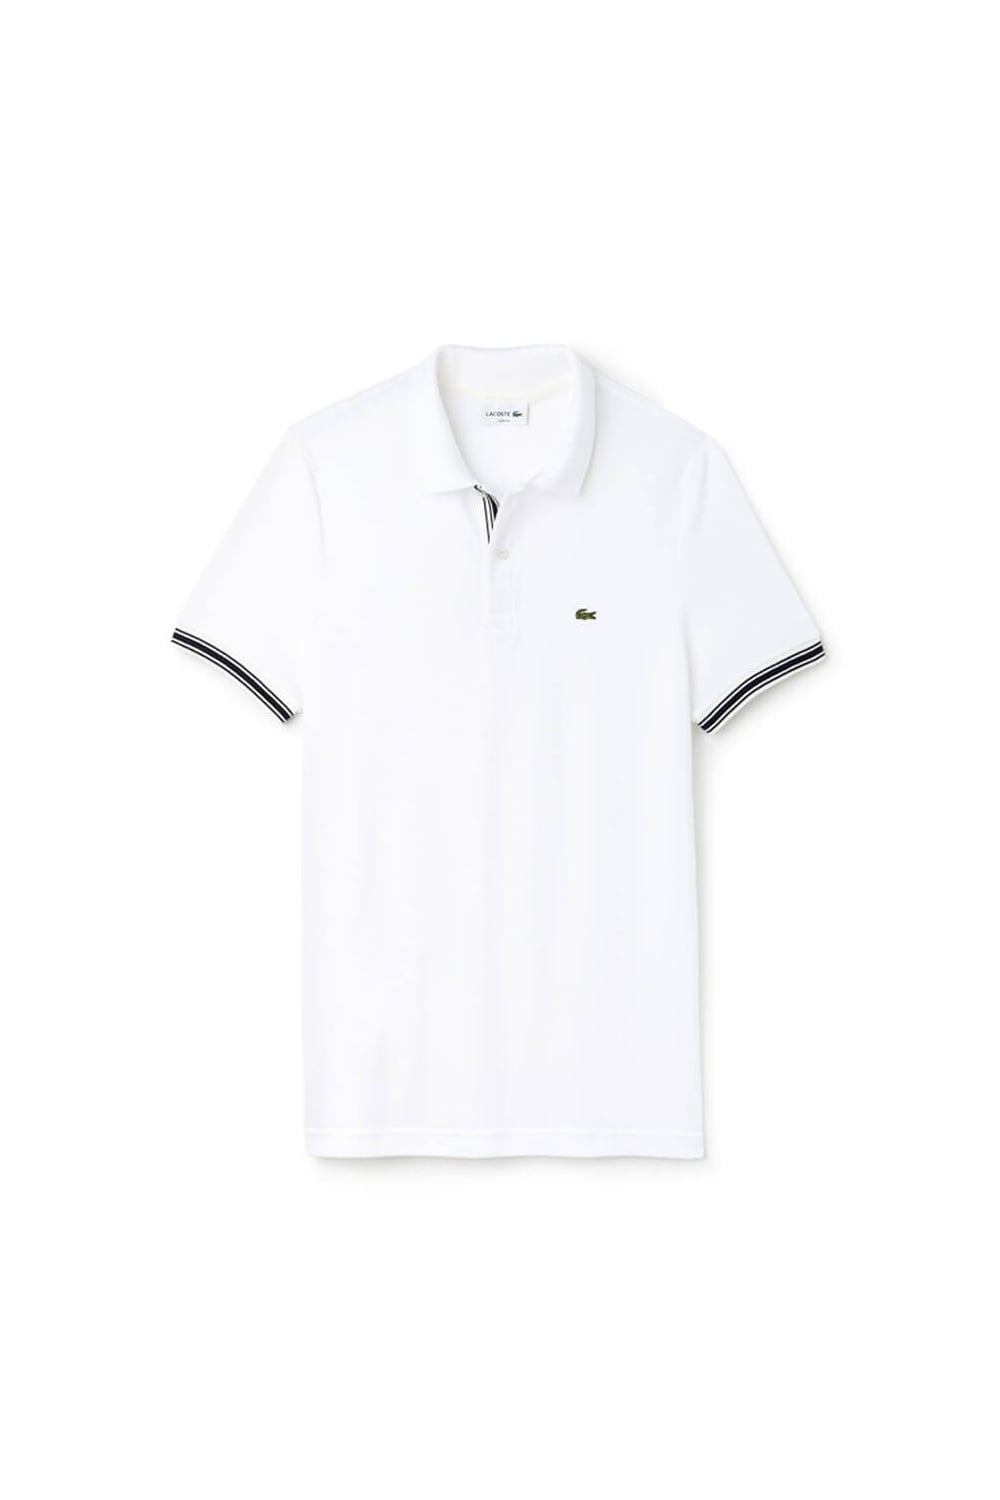 a98e5e755a7 Lacoste Slim Fit Stripe Placket Detail Polo Shirt White - Clothing ...